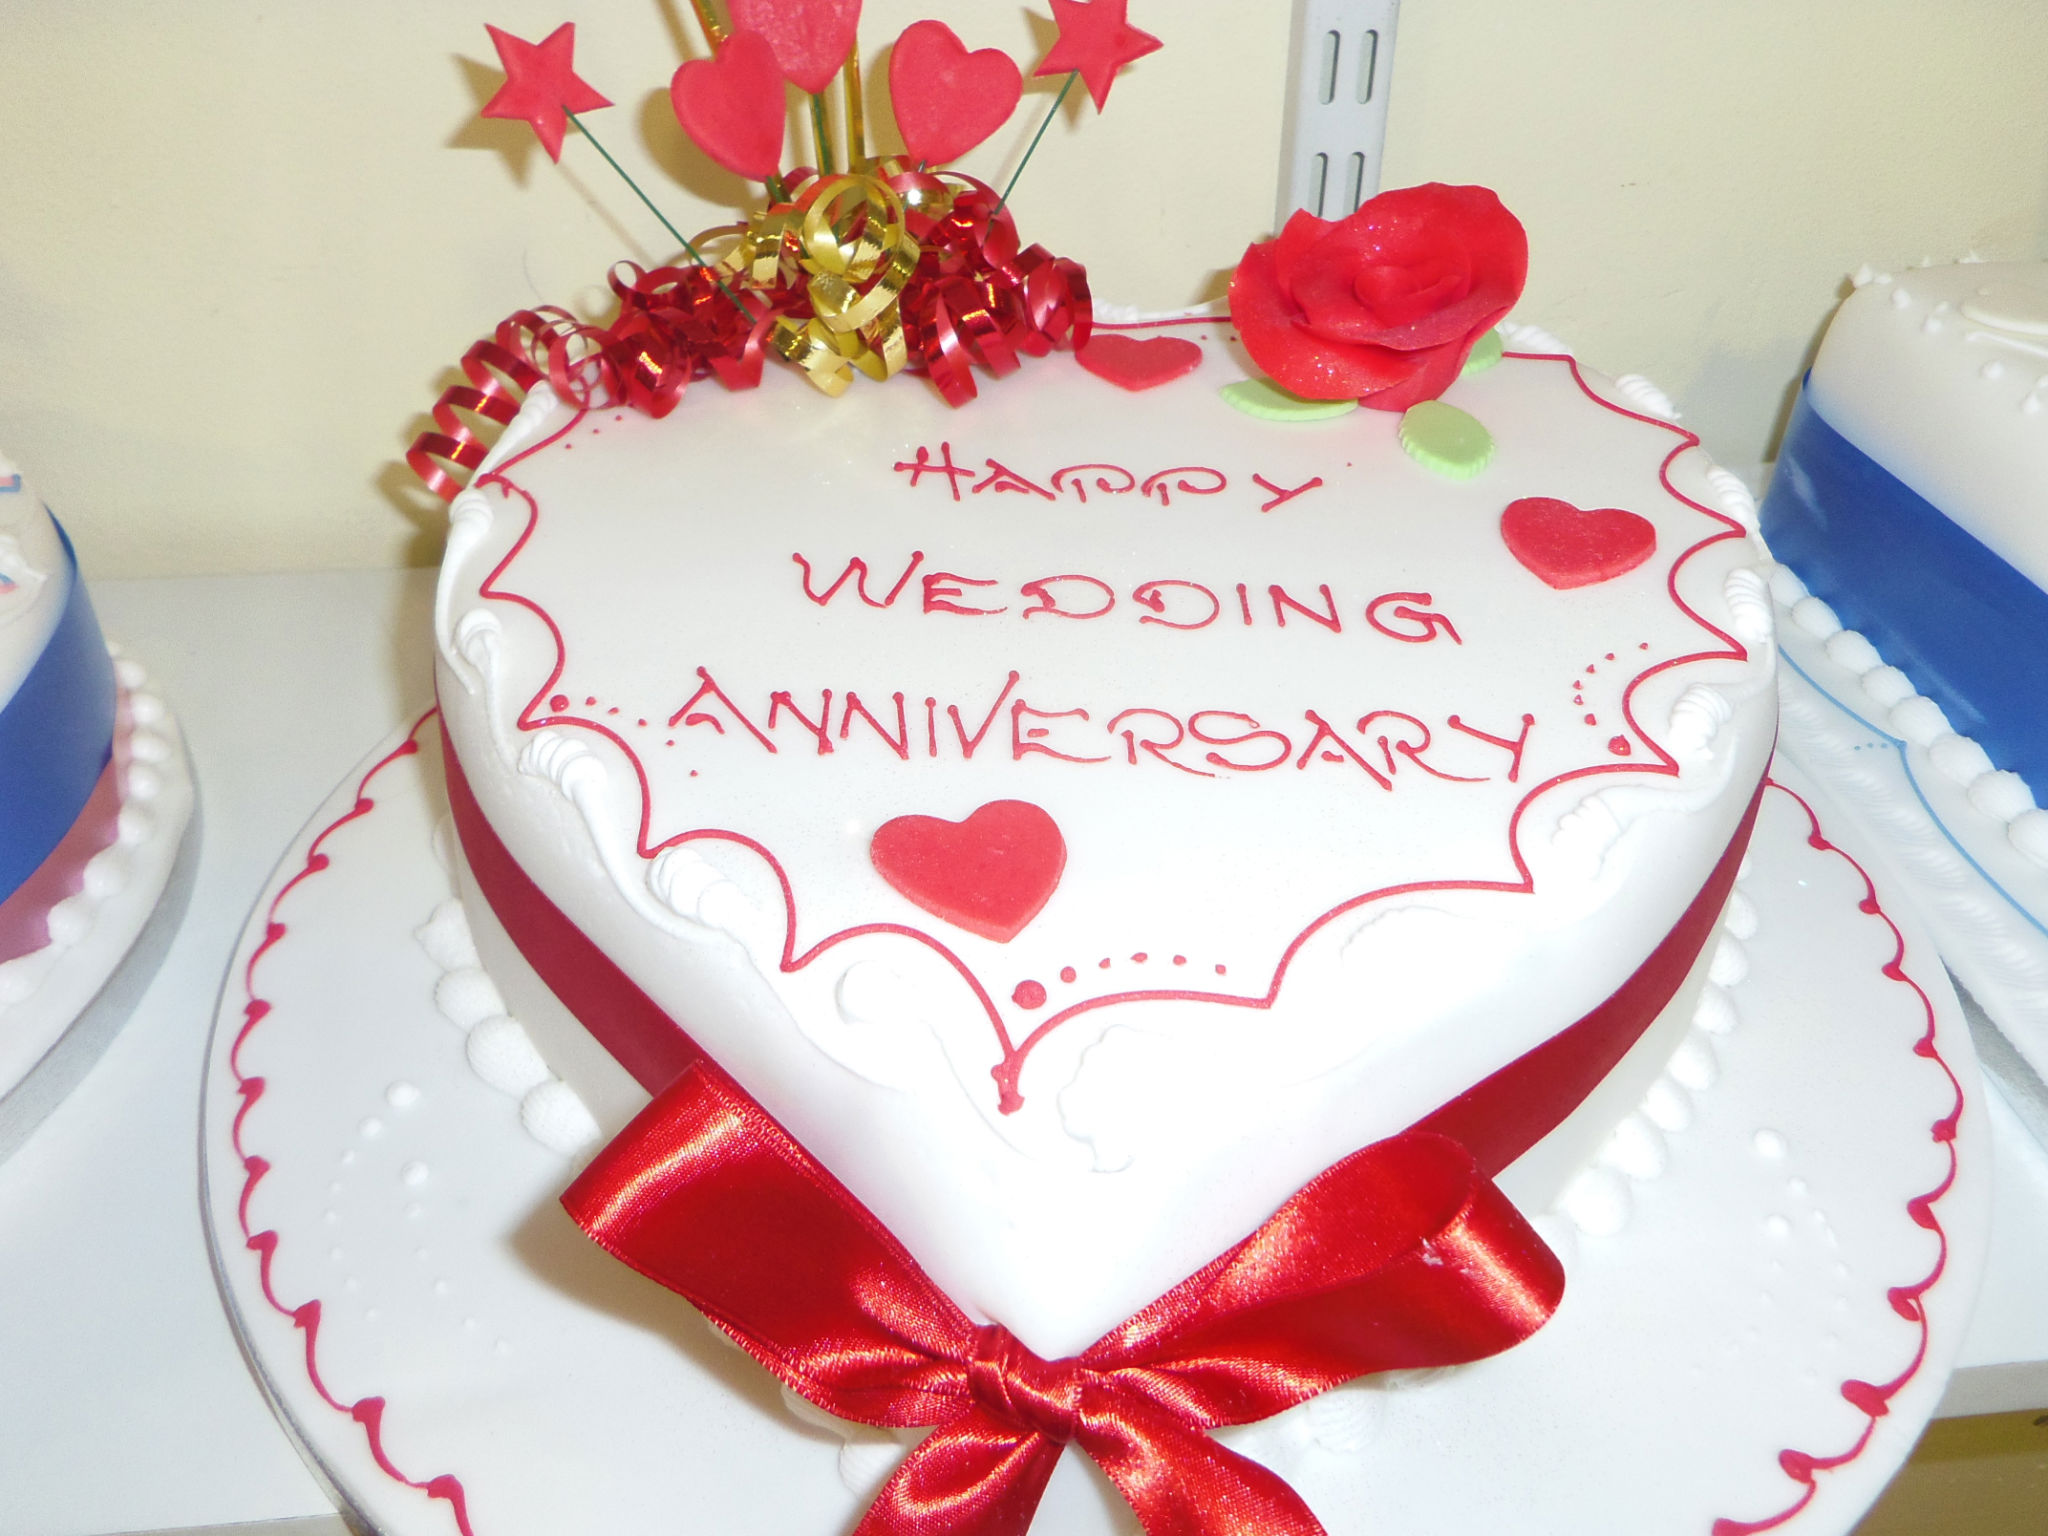 Happy-Wedding-Anniversary-cake